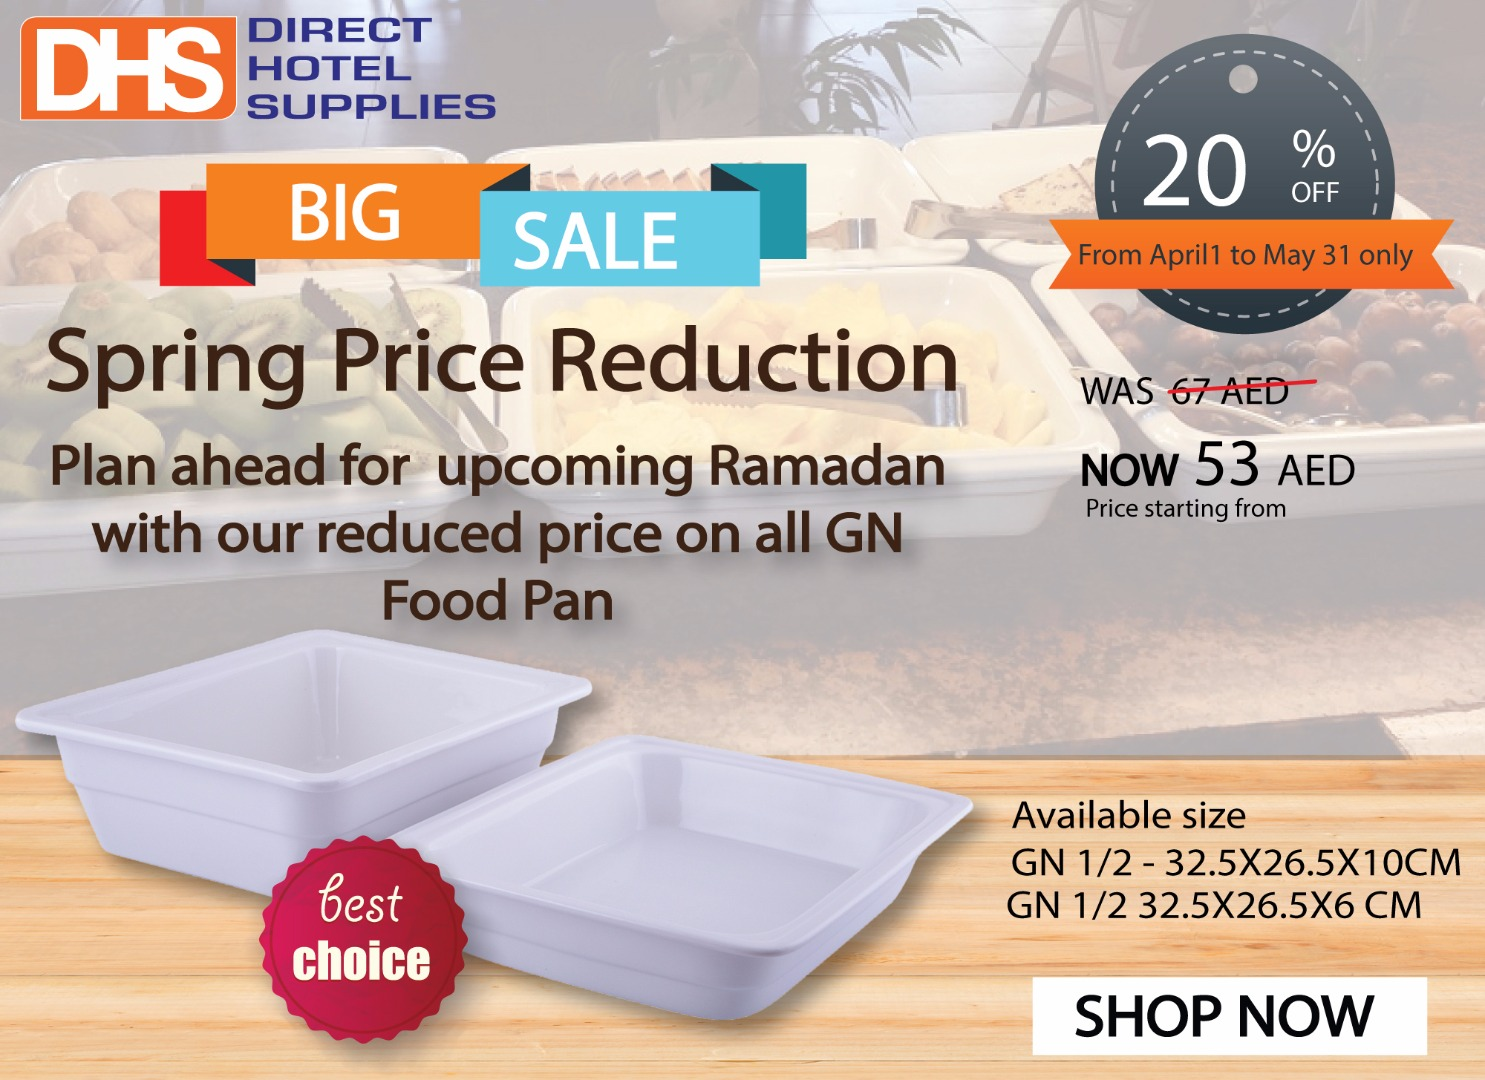 DHS Spring Price Reduction on all GN Food Pans